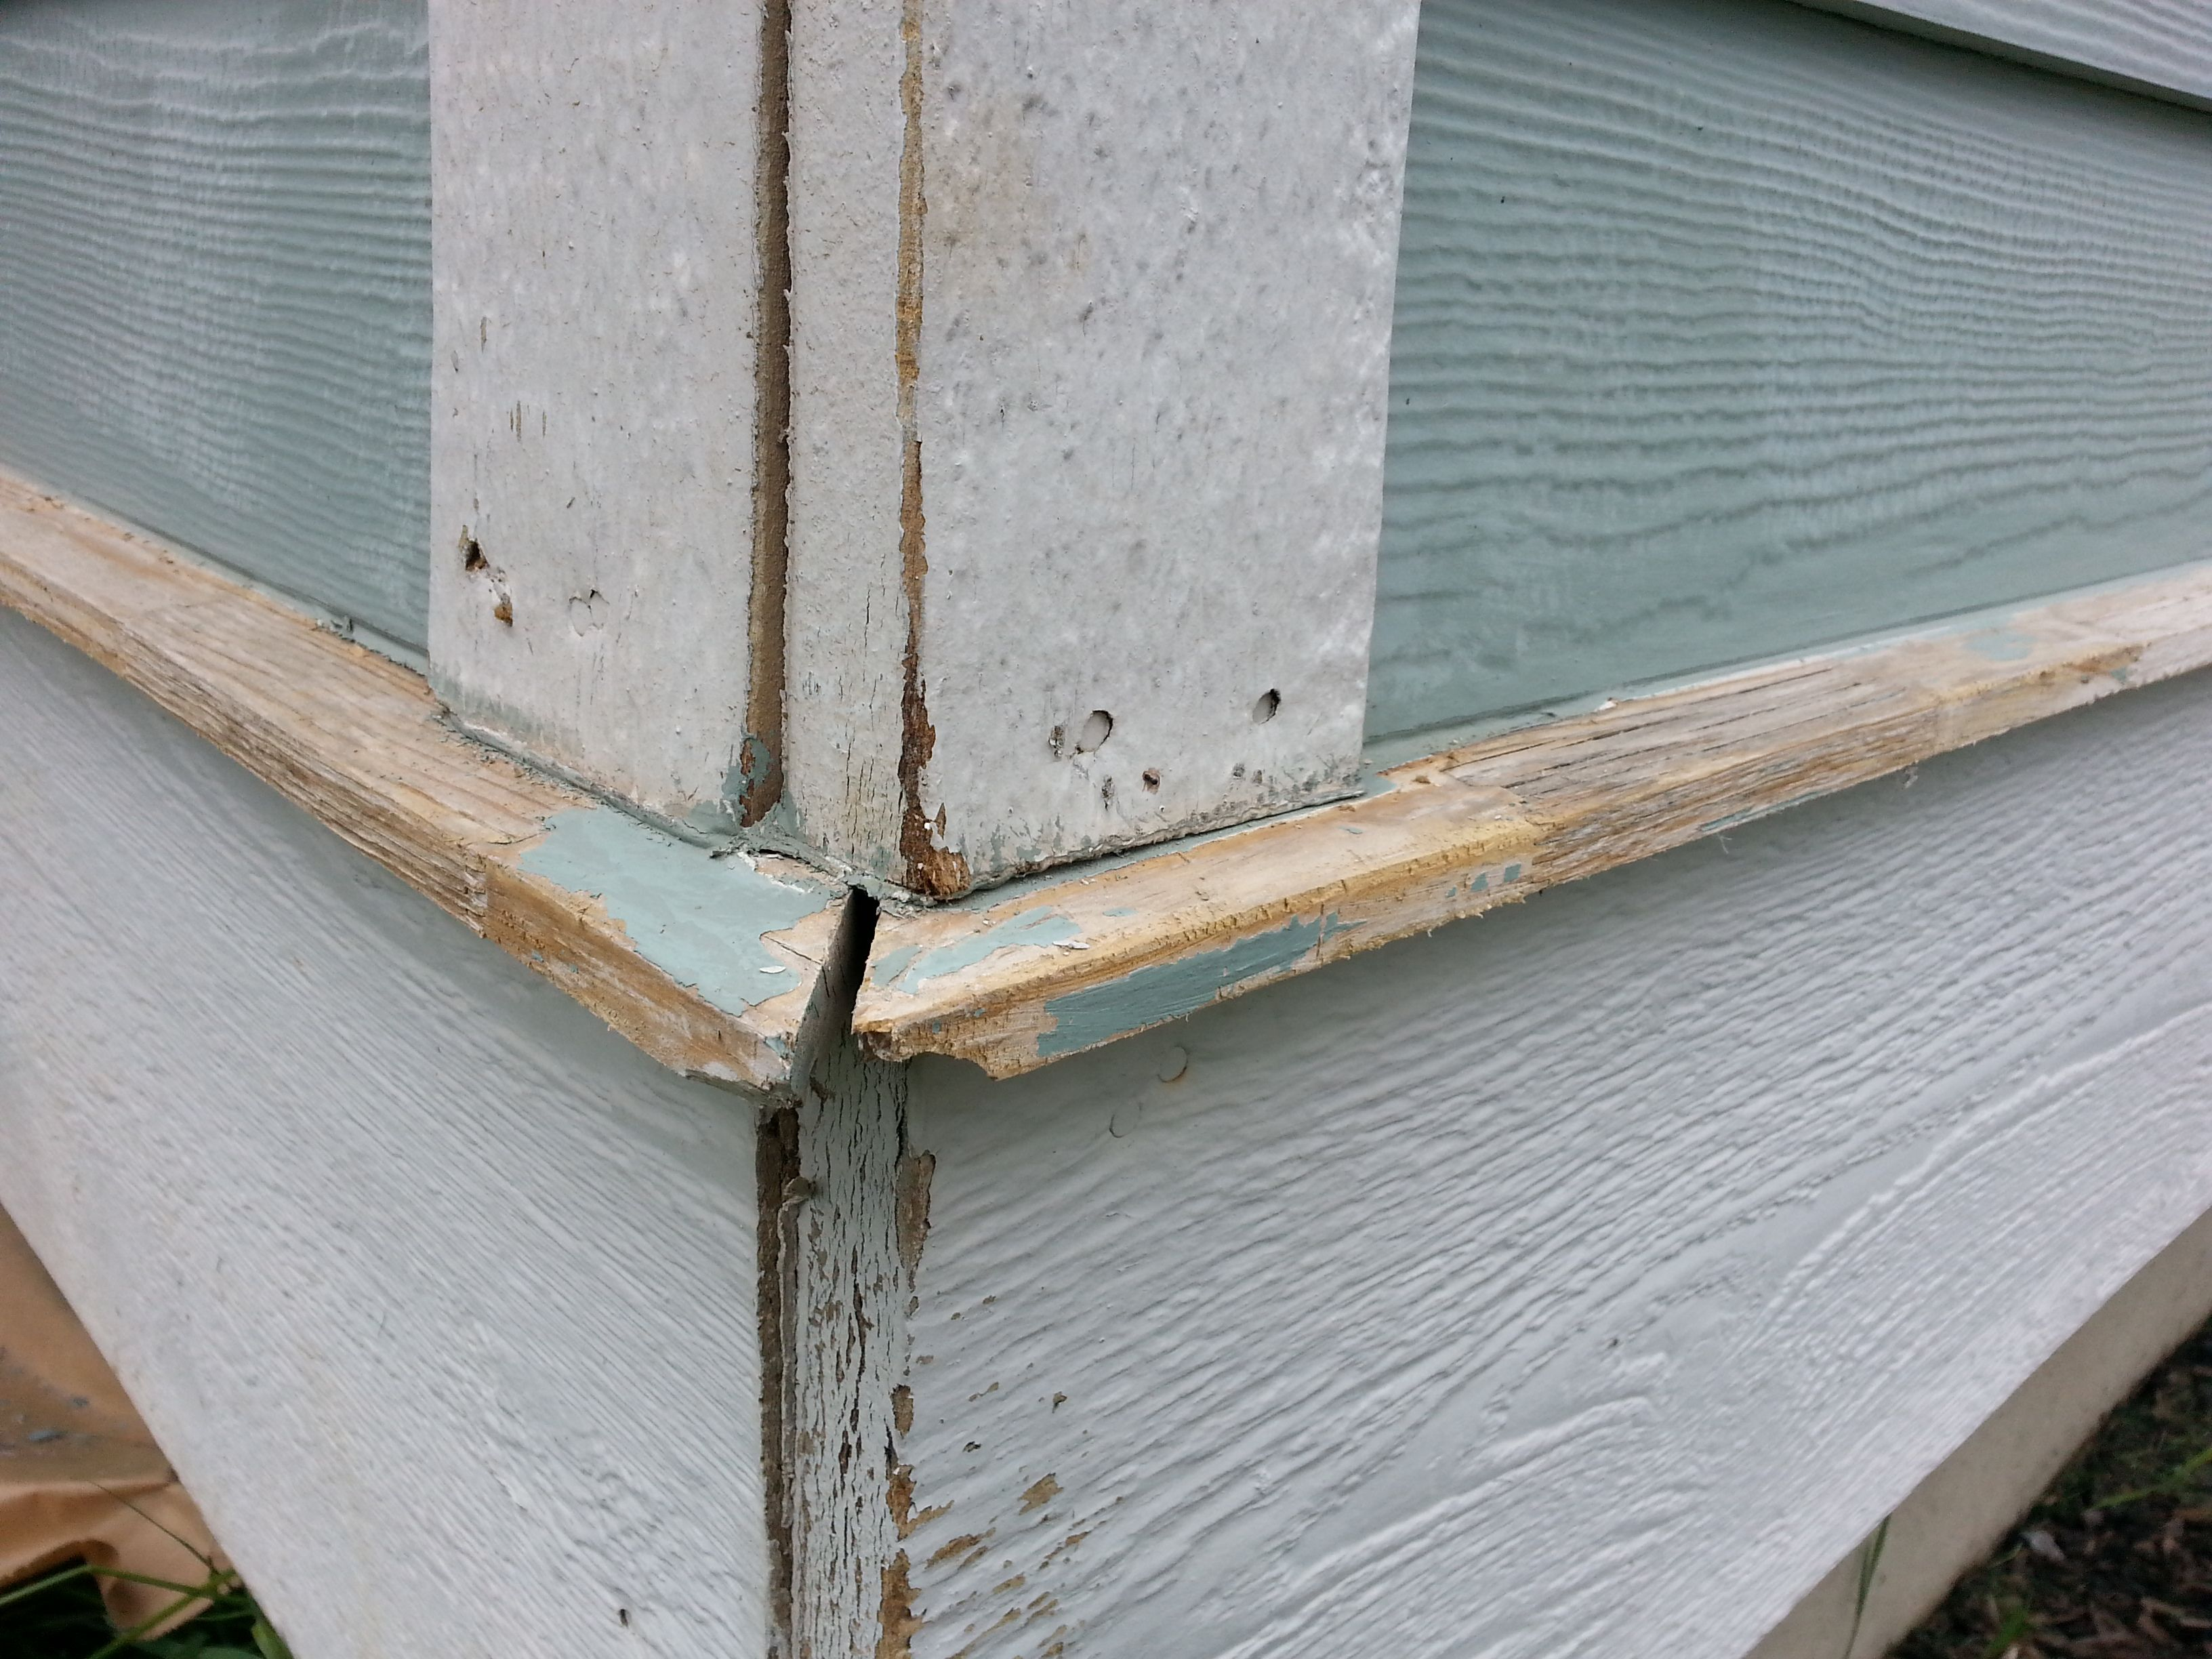 Drip Cap For Wood Siding Google Search Wood Siding Siding Wood